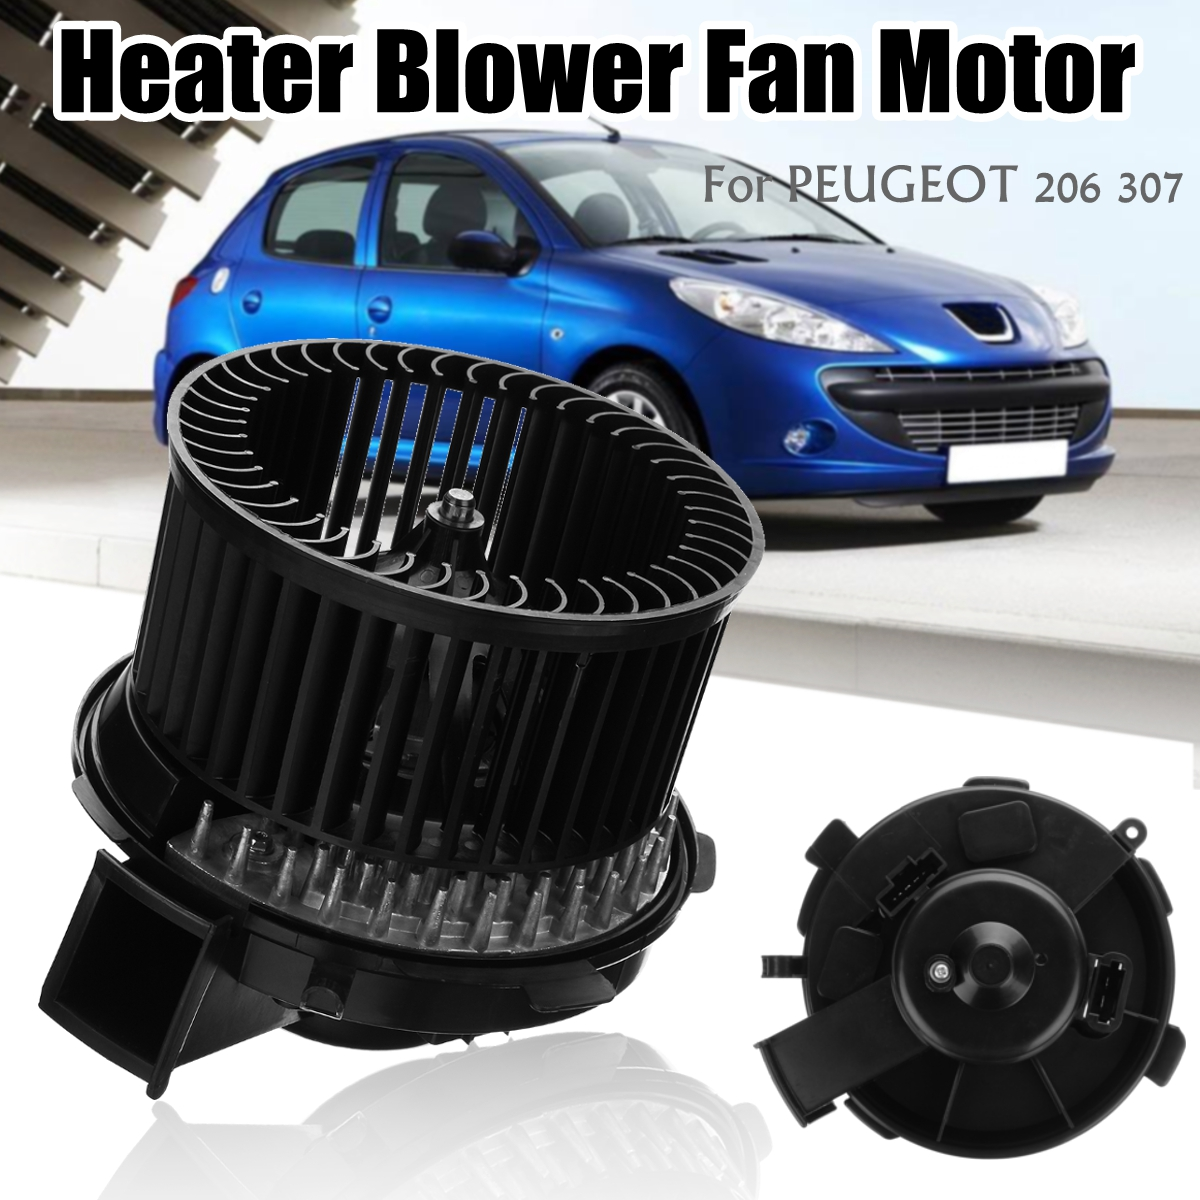 6441K0 12V Car Heater Blower Fan Motor With AIR CON for Peugeot 206 CC/SW 307  CC/SW-in Air-conditioning Installation from Automobiles & Motorcycles on ...